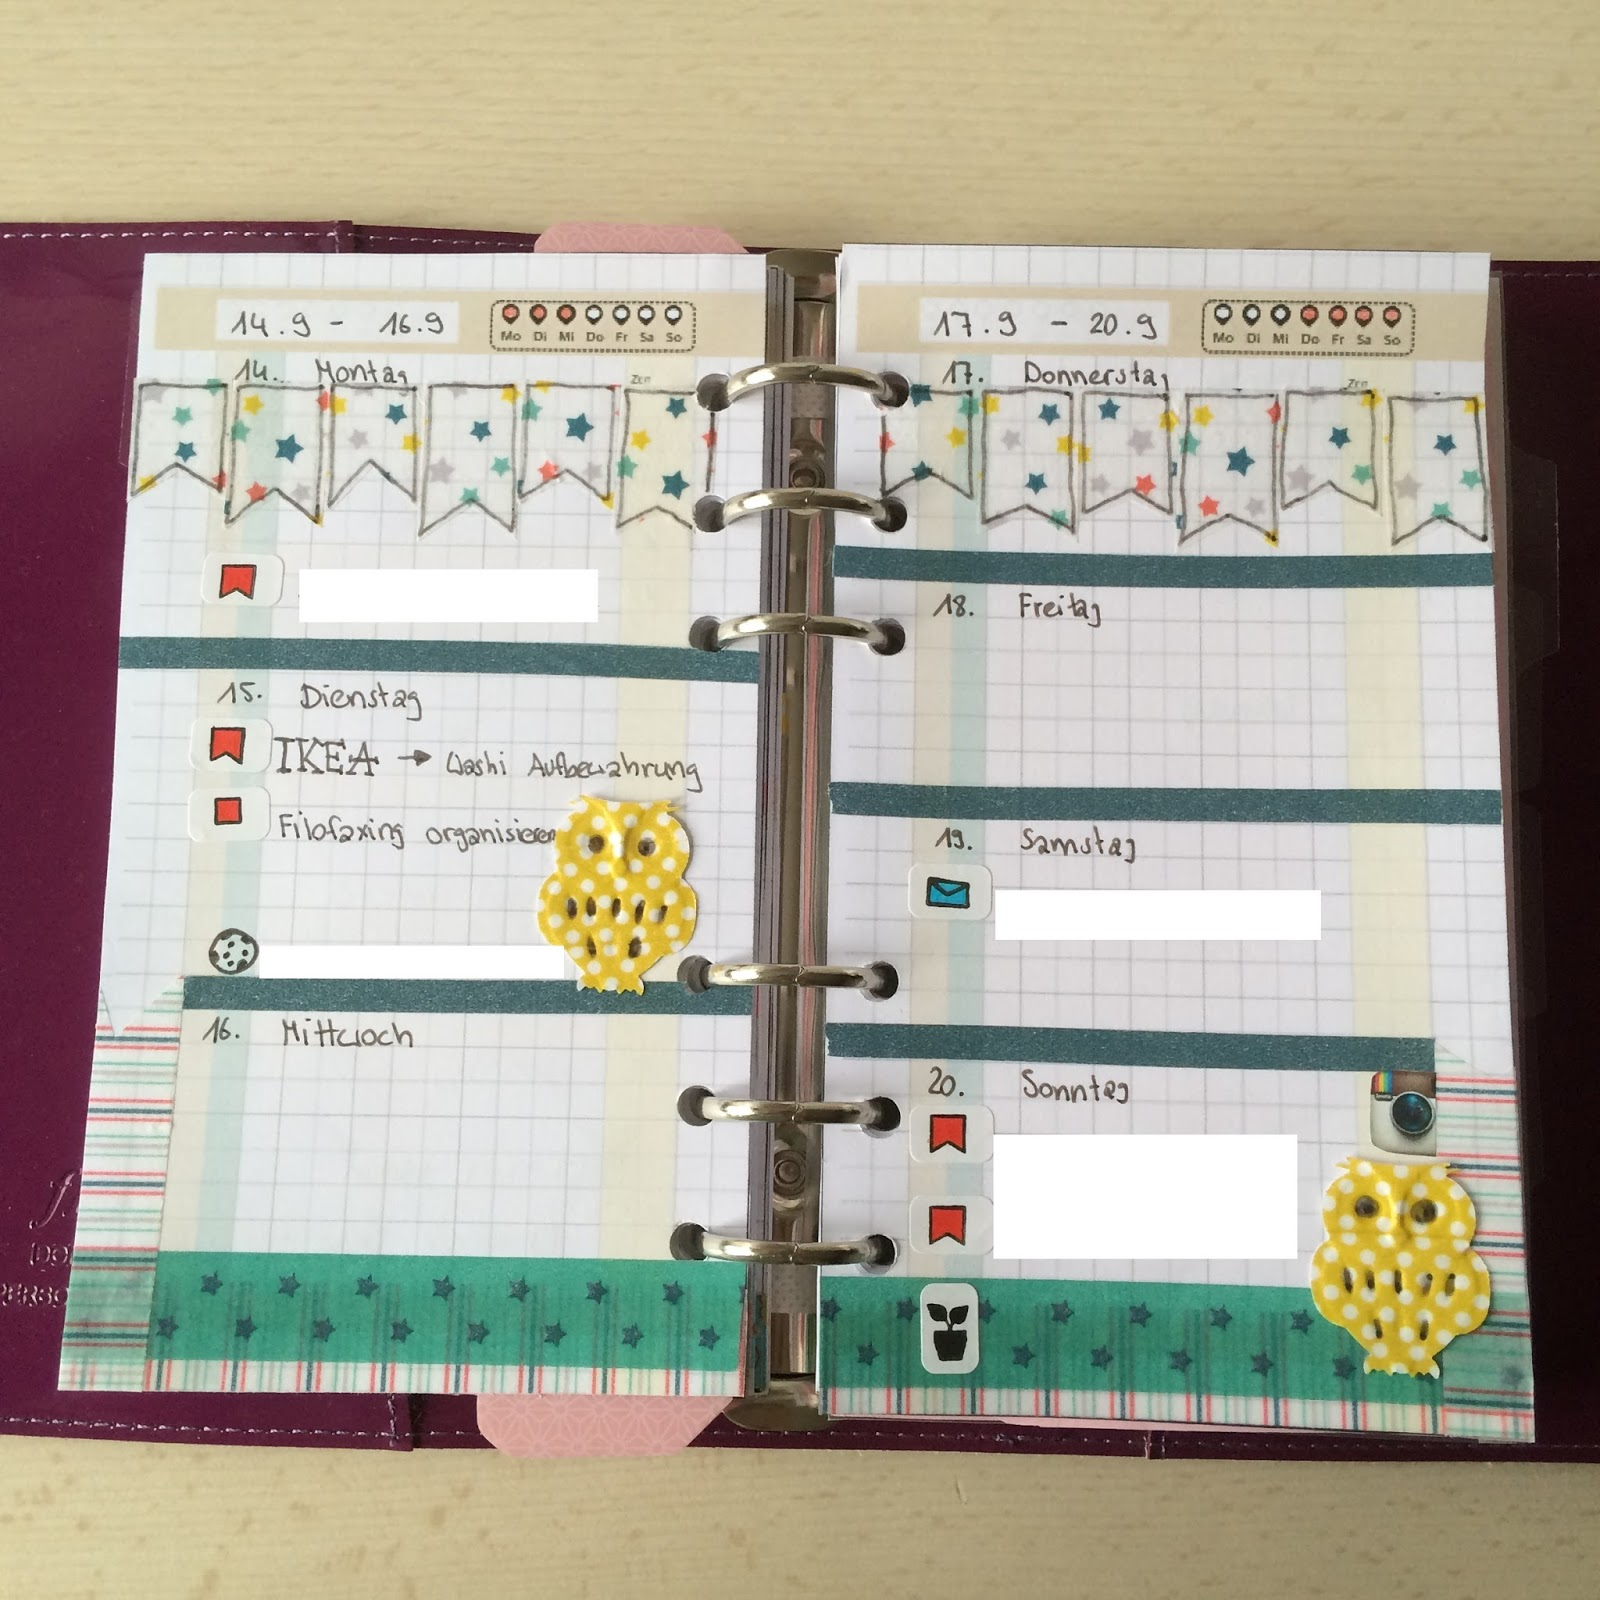 Franzis Filofax World Plan With Me Woche 1